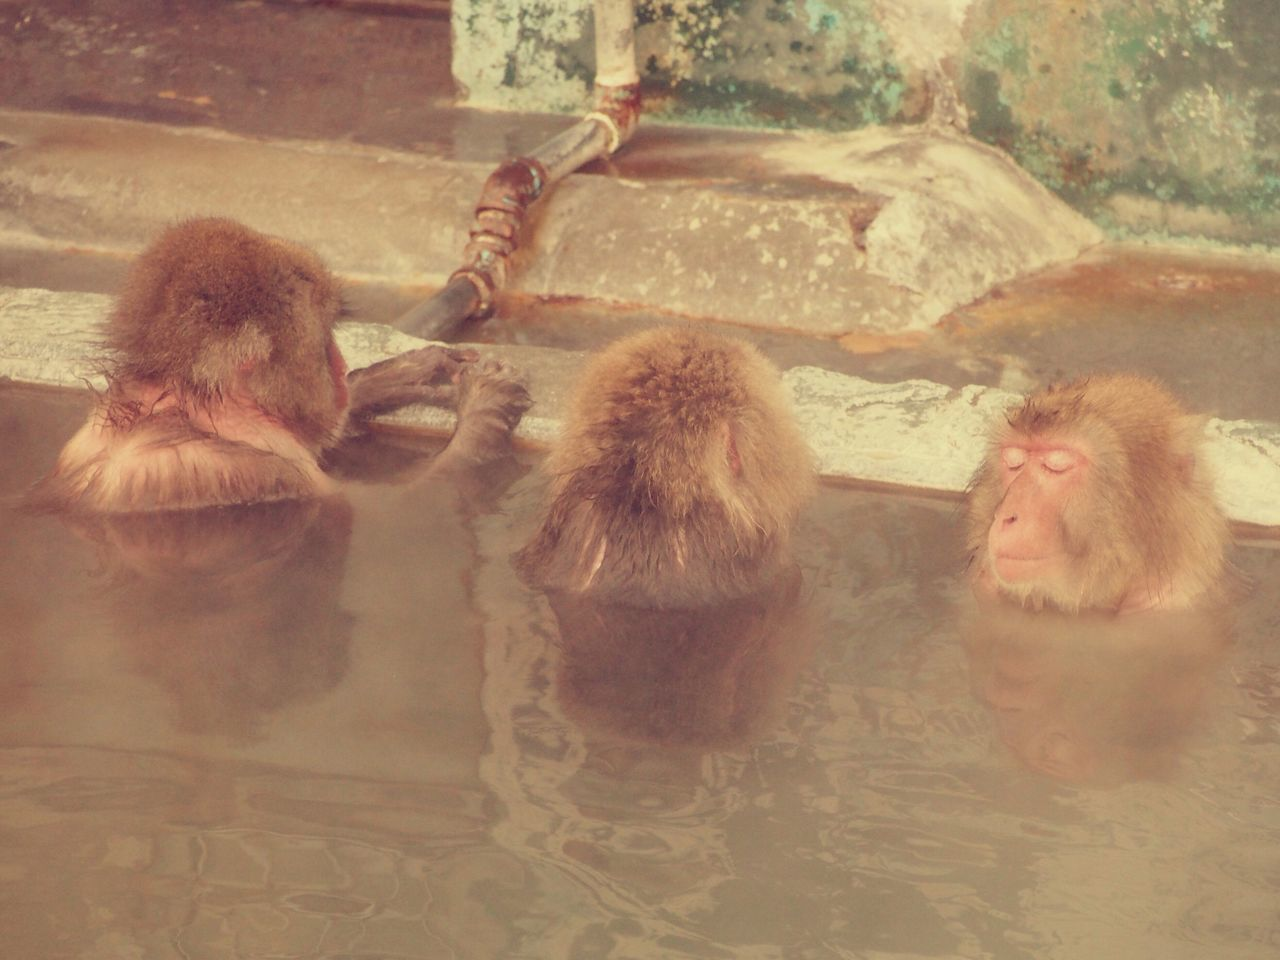 Monkeys enjoy hot spring. Monkey Hotspring Relaxing Feeling Good Hakodate Hokkaido